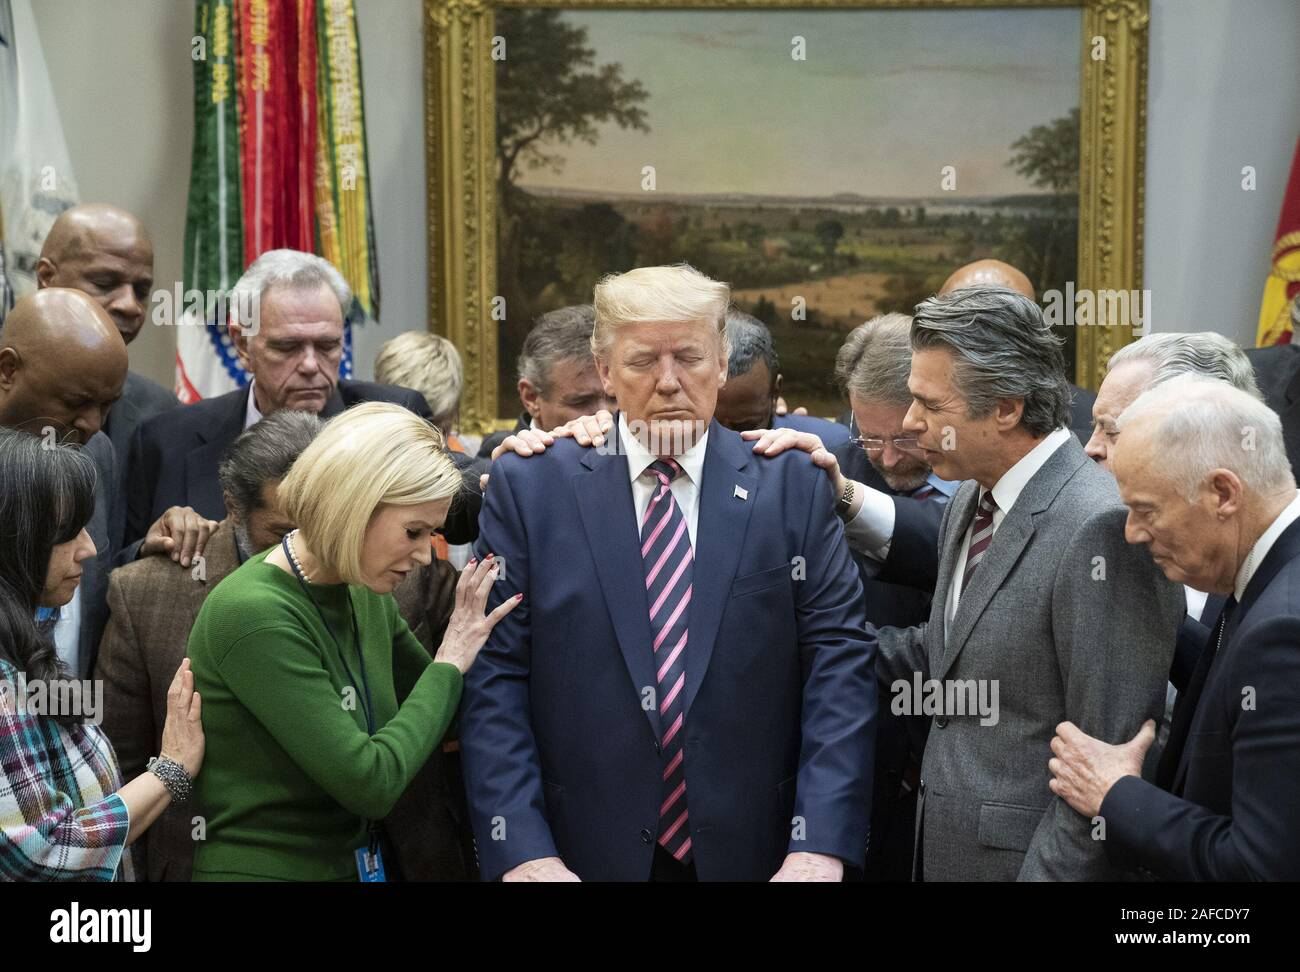 Washington, United States Of America. 12th Dec, 2019. President Donald J. Trump joins faith leaders in prayer Thursday, Dec. 12, 2019, during a meeting in the Roosevelt Room of the White House People: President Donald J. Trump Credit: Storms Media Group/Alamy Live News Stock Photo